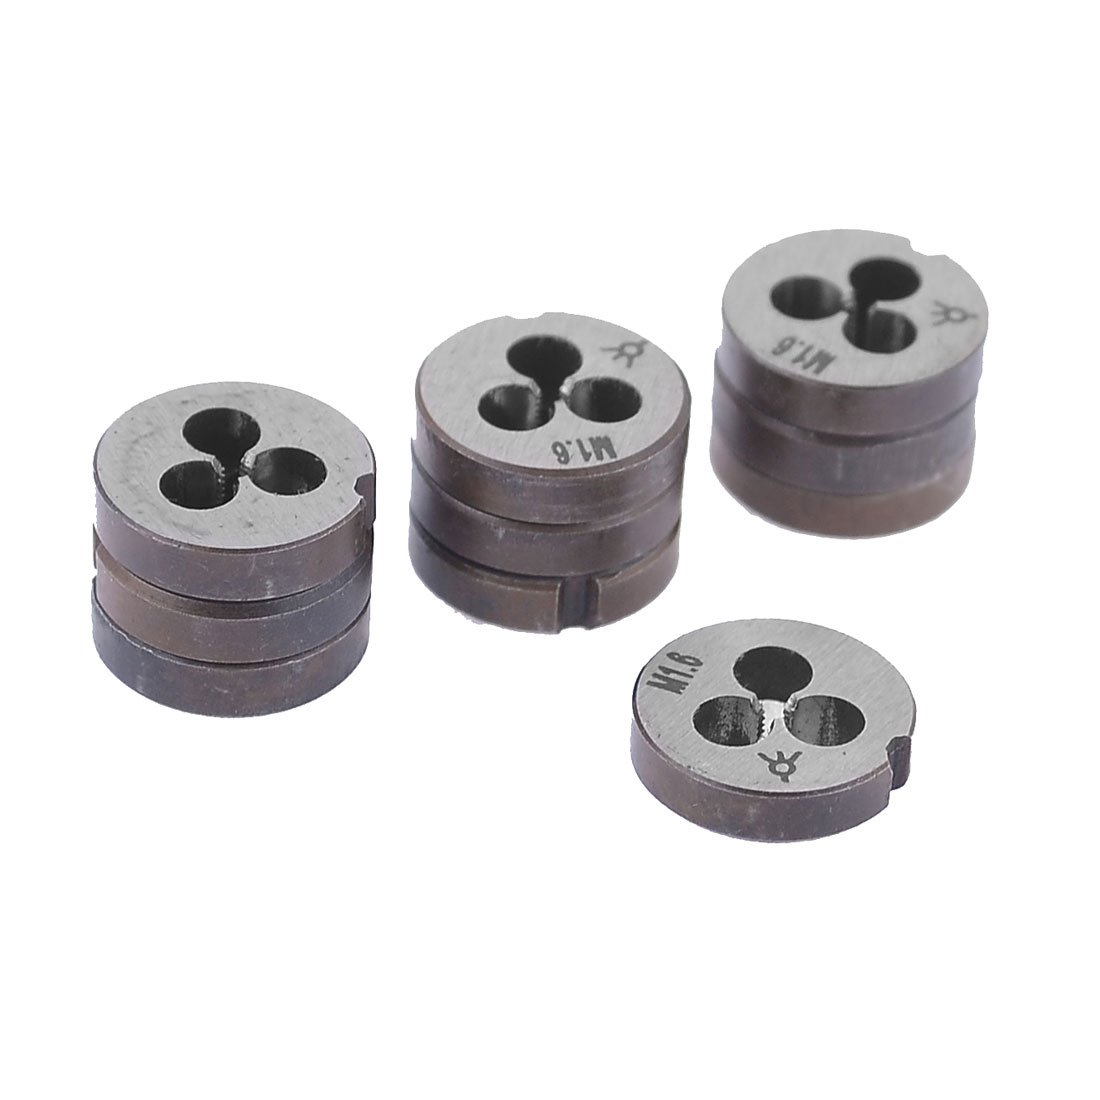 M1.6 1.45mm Pitch 12mm OD Hand Tool Round Threaded Die 10 Pcs